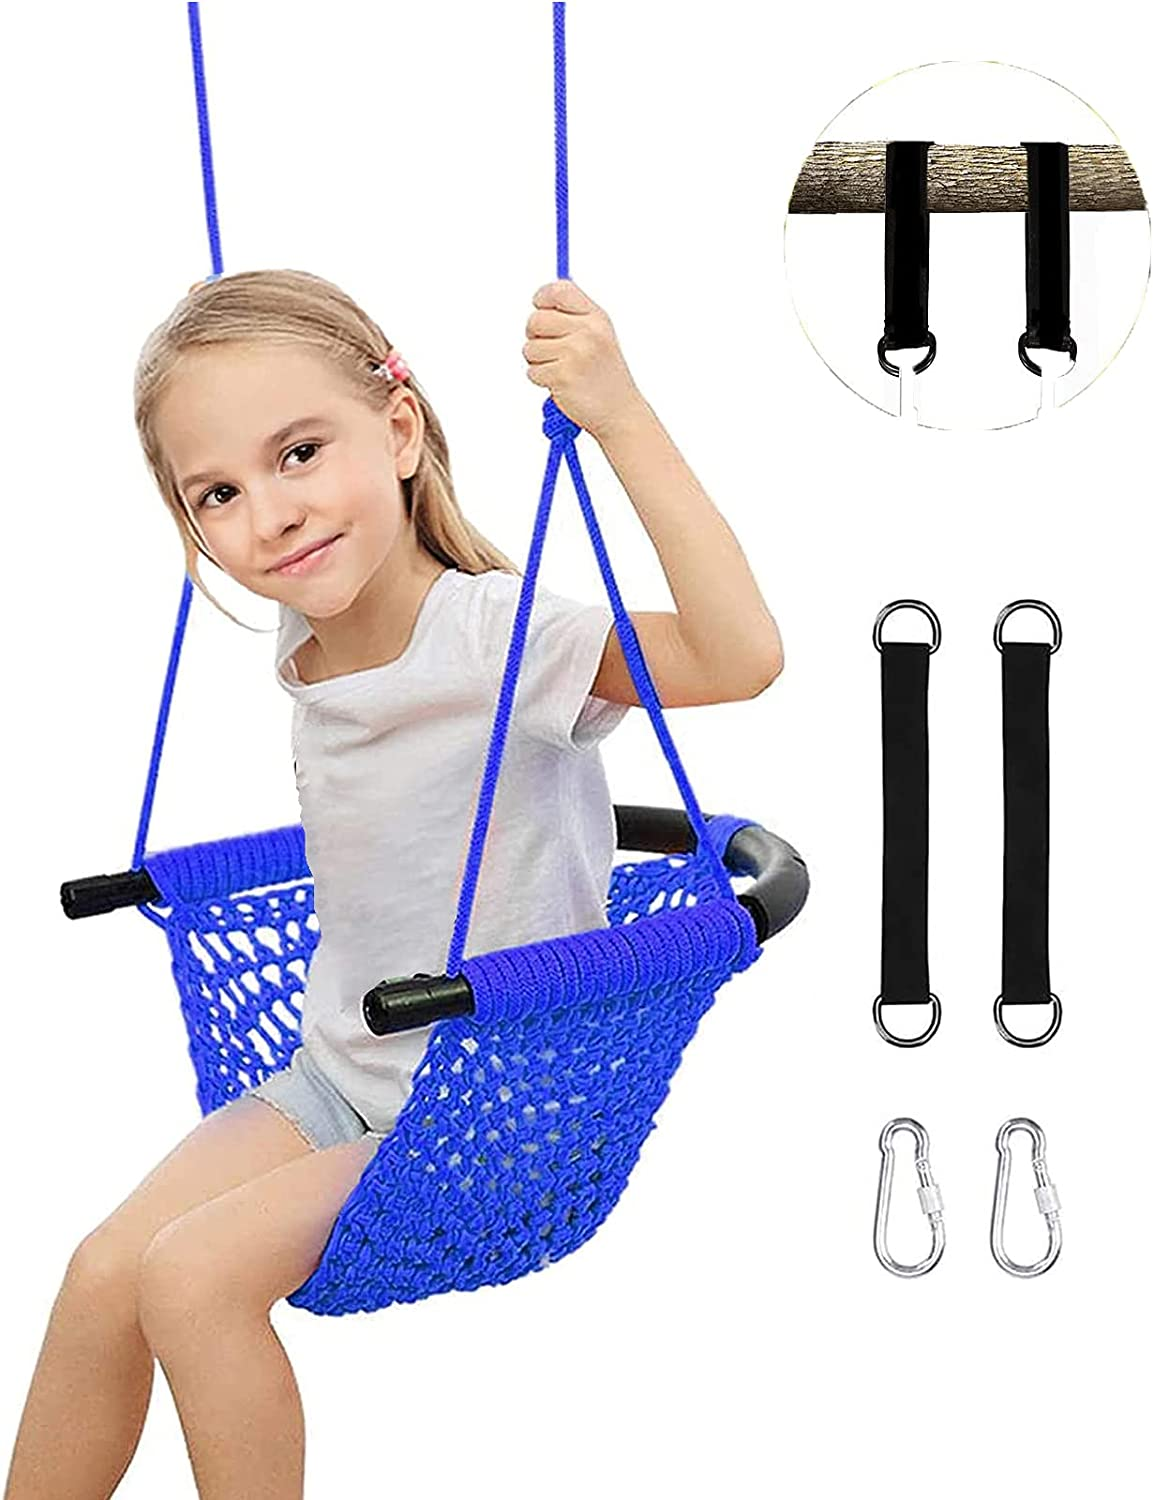 LUVIN Swing Seat Sales results No. 1 trend rank for Kids Sets Acc Tree Backyard